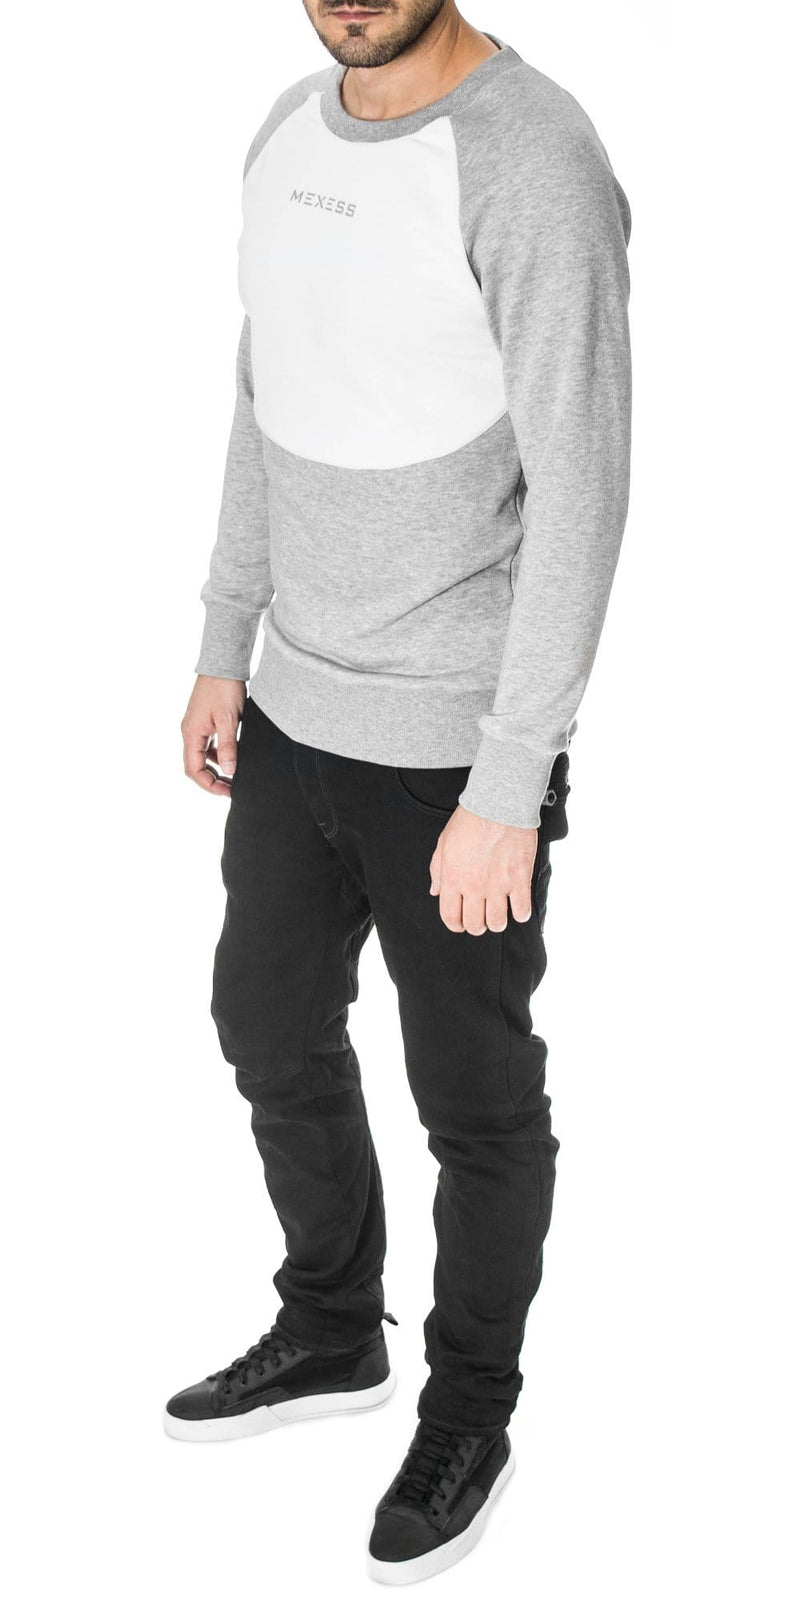 2 tone sweatshirt for men